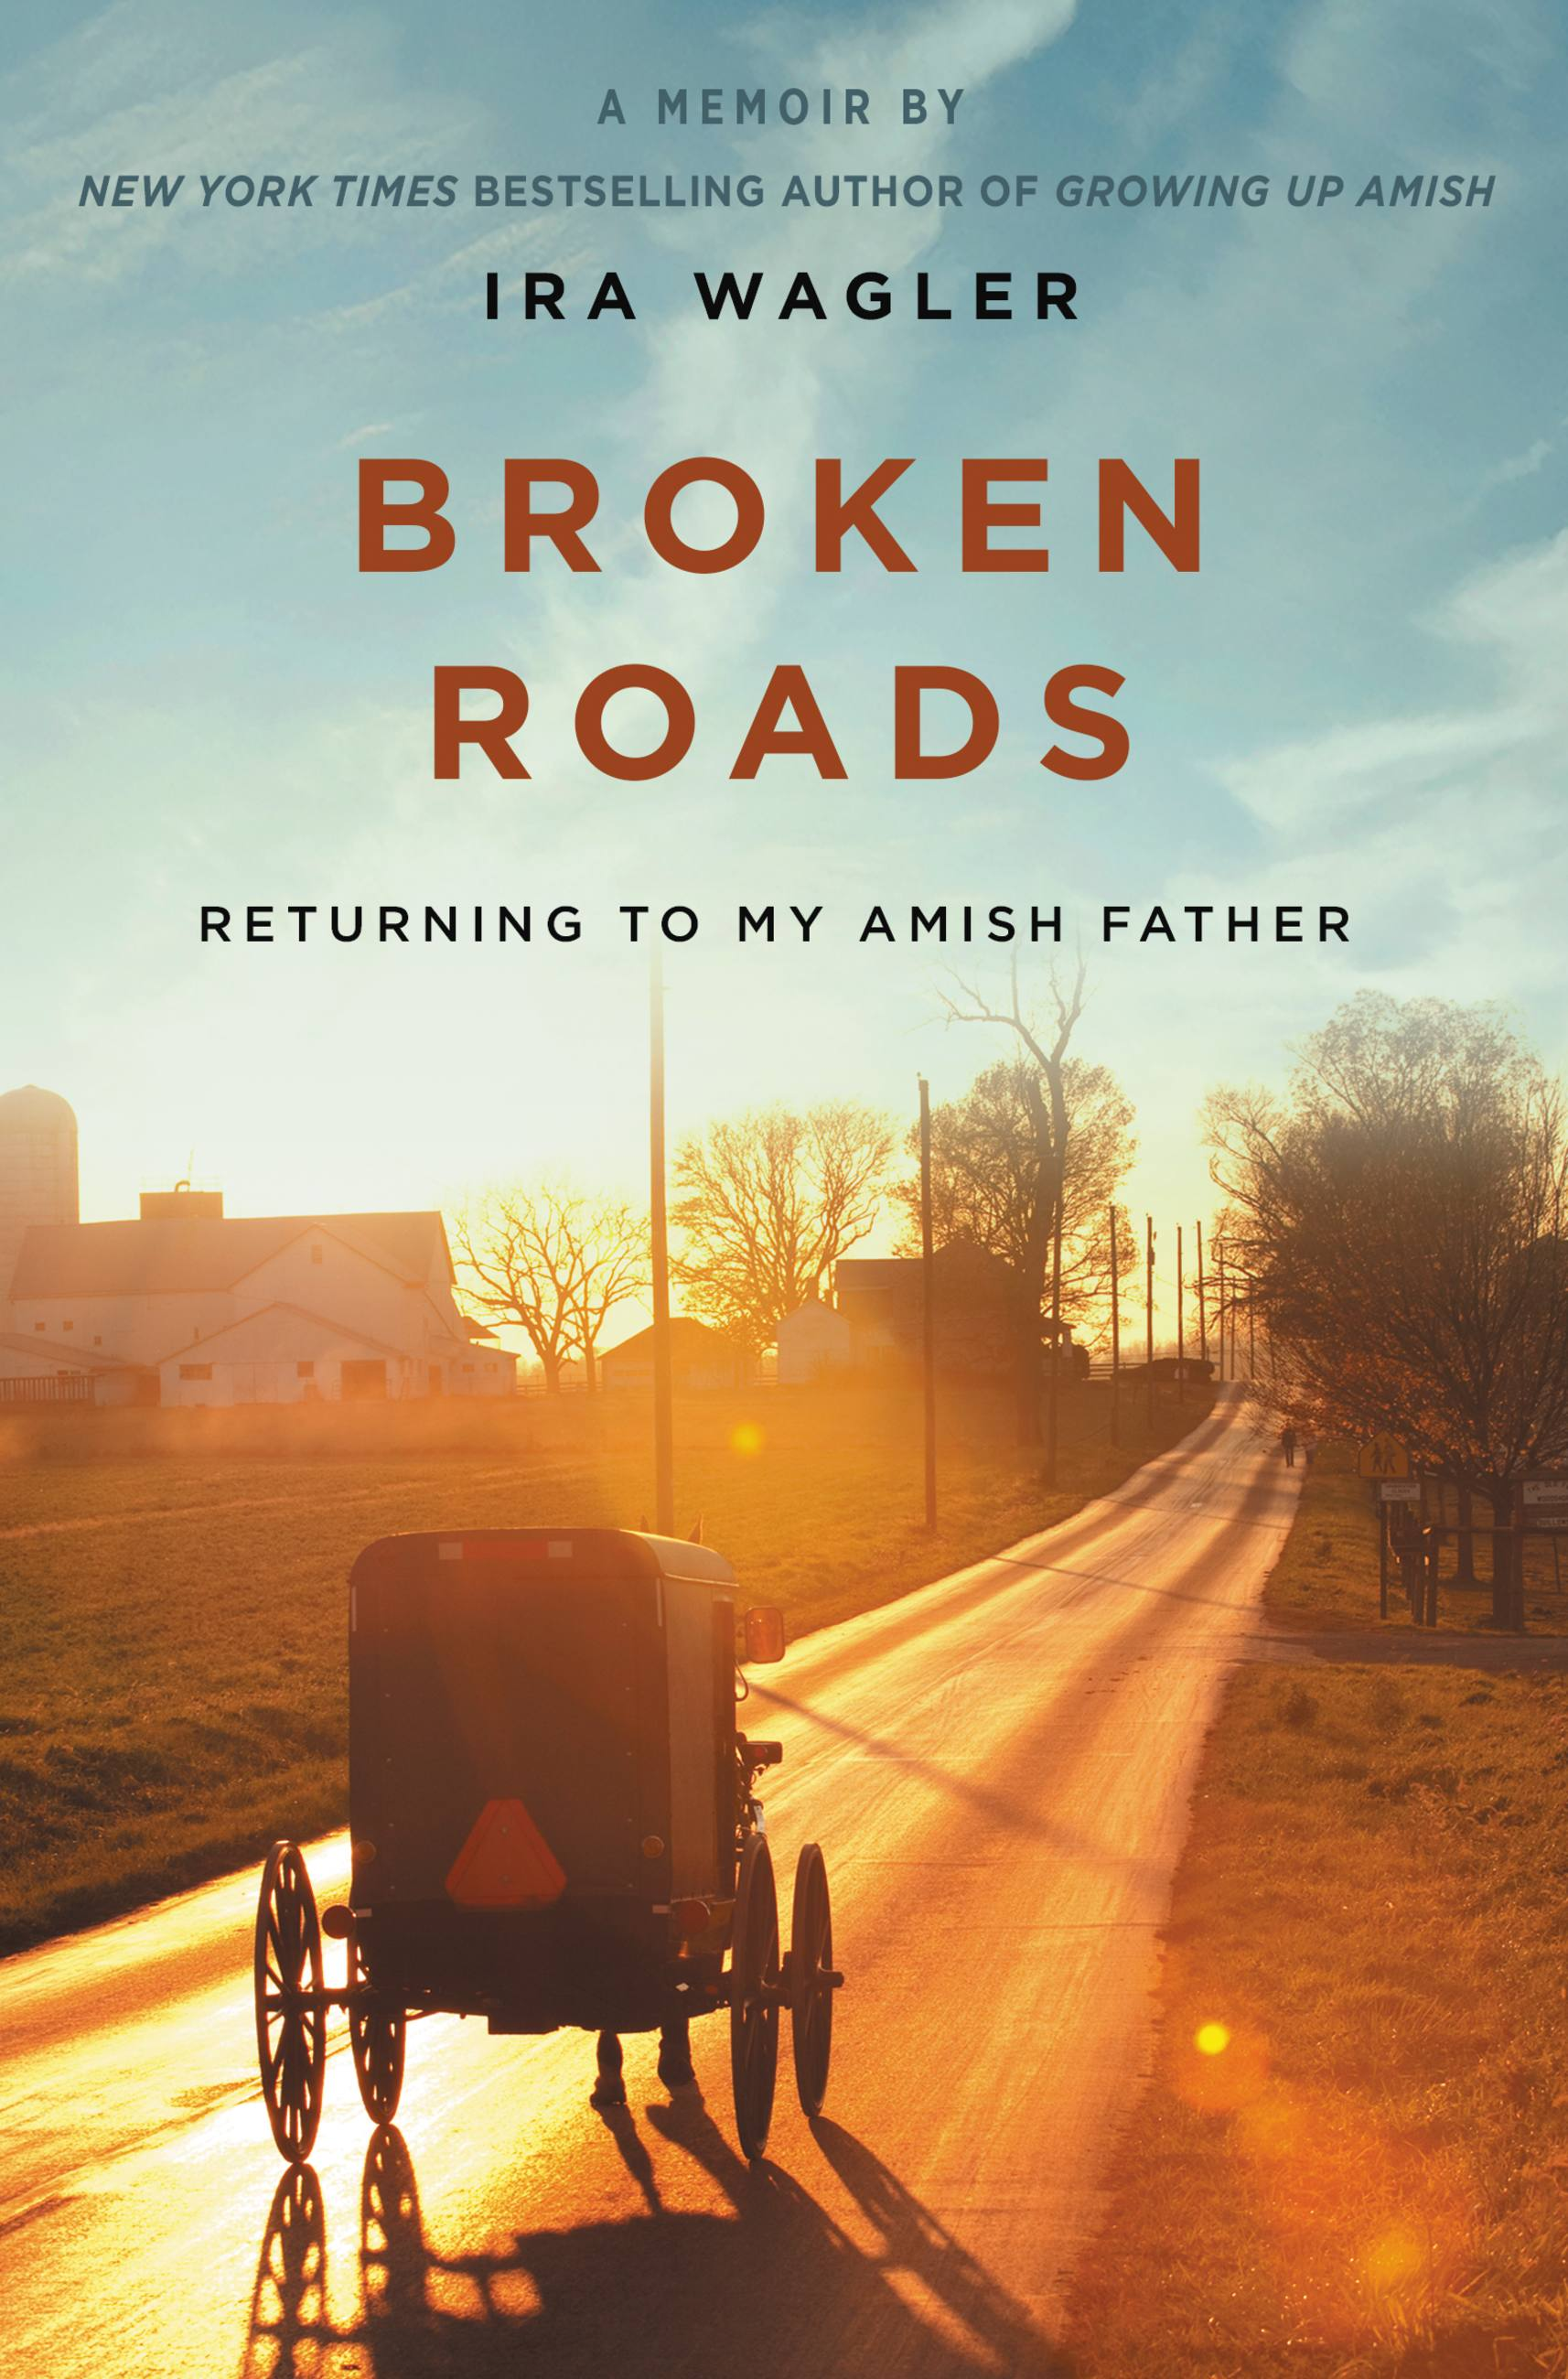 Broken Roads Returning to My Amish Father